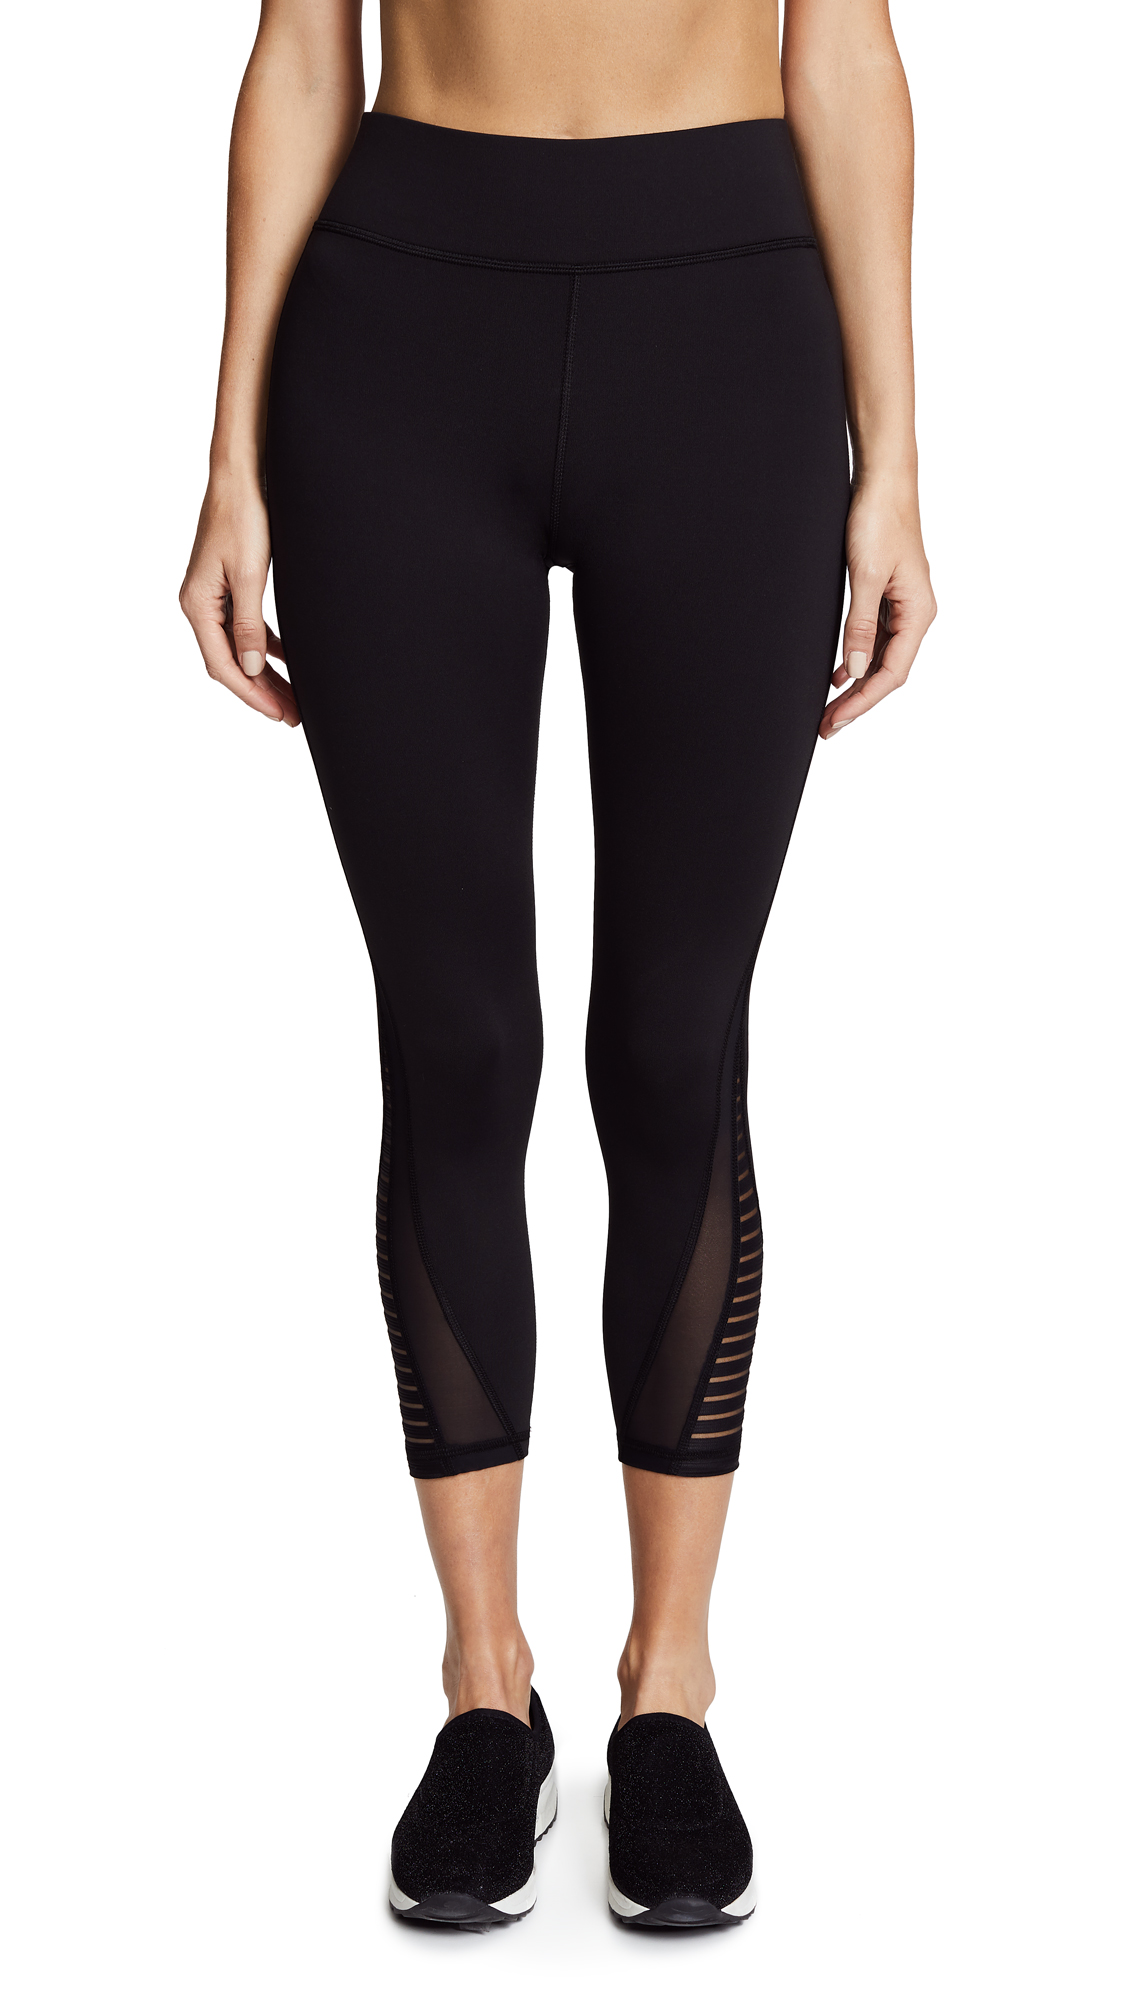 Cropped MICHI leggings with striped mesh gussets for easy movement. A wide elastic waist provides a comfortable fit. Overlock seams. Fabric: Activewear jersey. 88% nylon/12% spandex. Wash cold. Made in Canada. Measurements Rise: 9.75in / 25cm Inseam: 22in / 56cm Measurements from size S